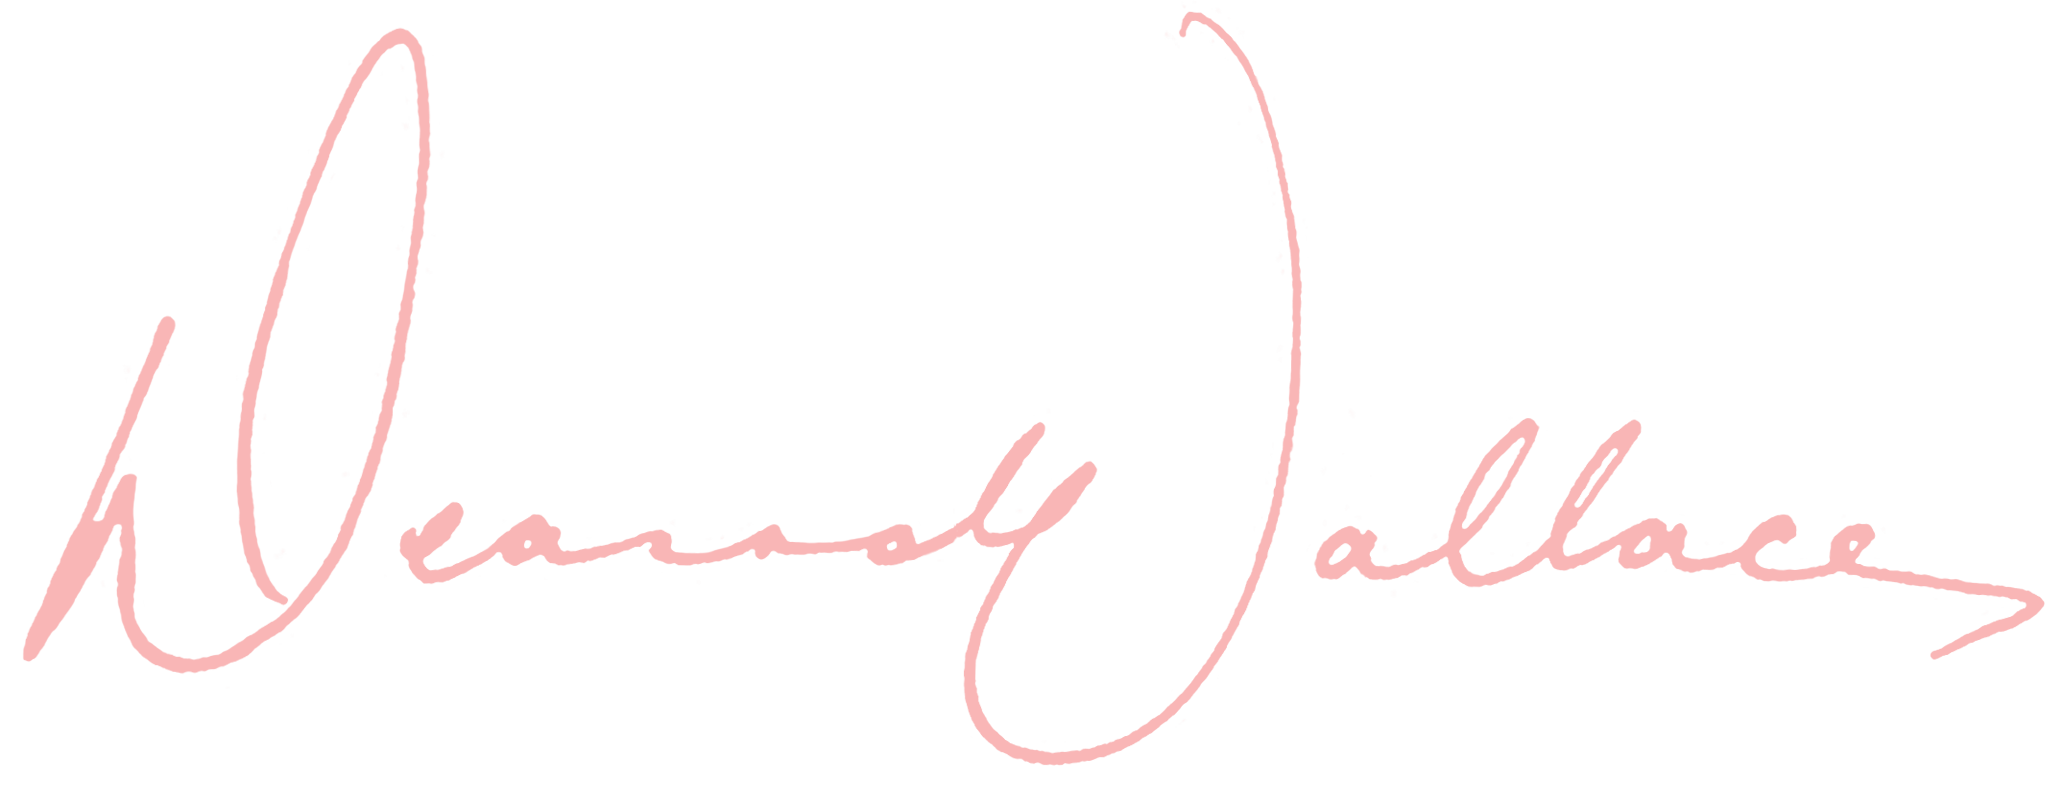 signature-logo-only-pink.png